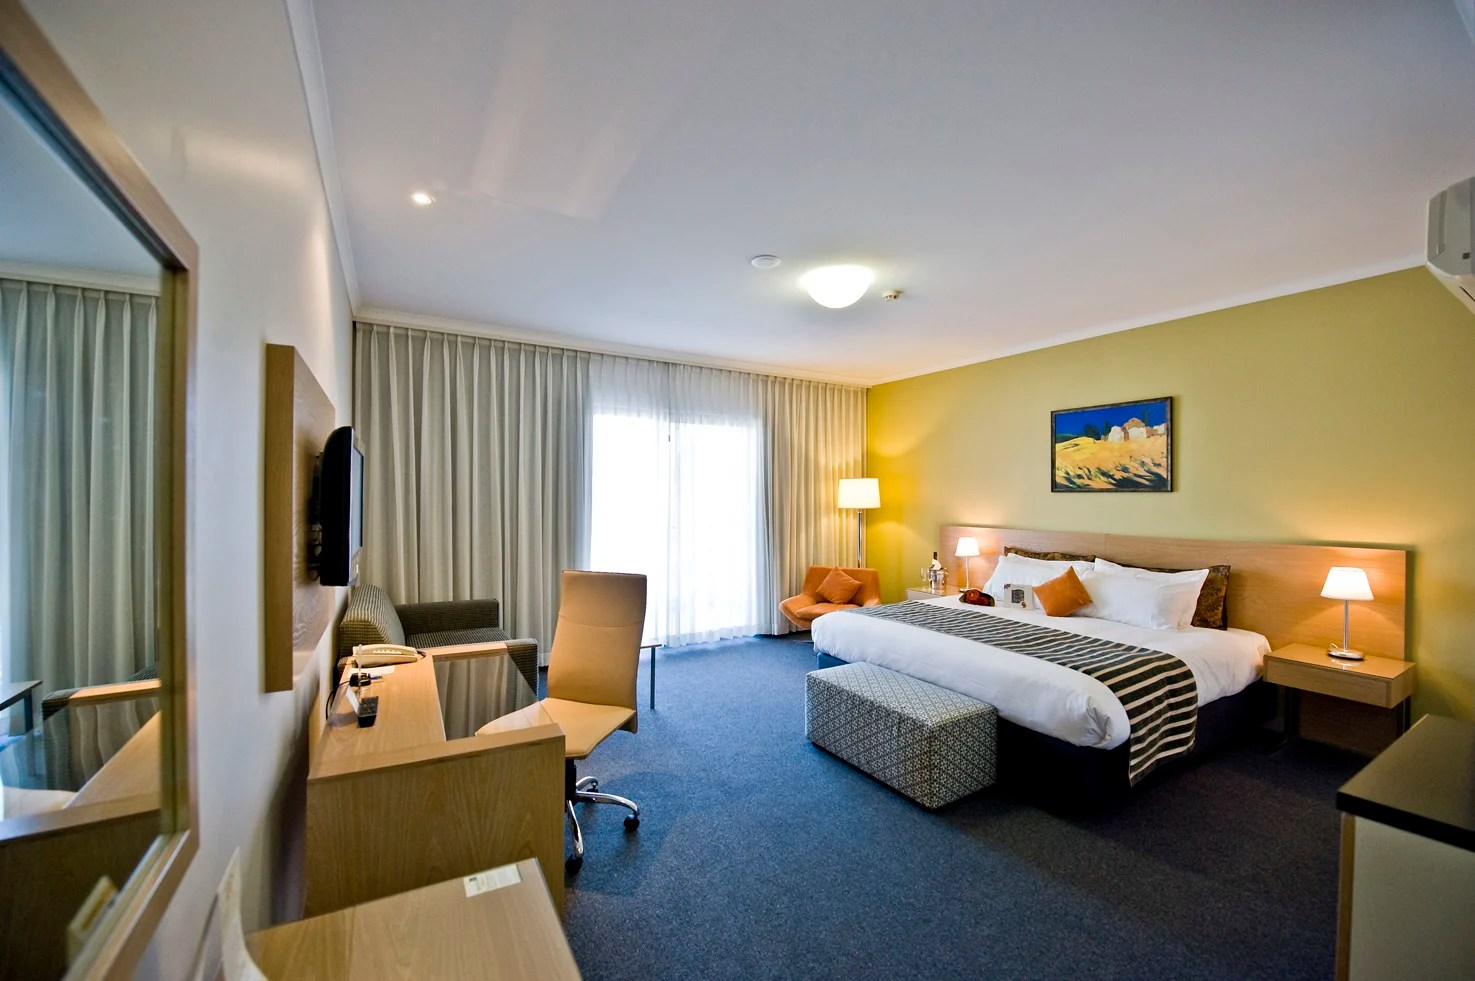 2 Bedroom Accommodation Canberra Hotel The Woden Hotel Canberra Trivago Au